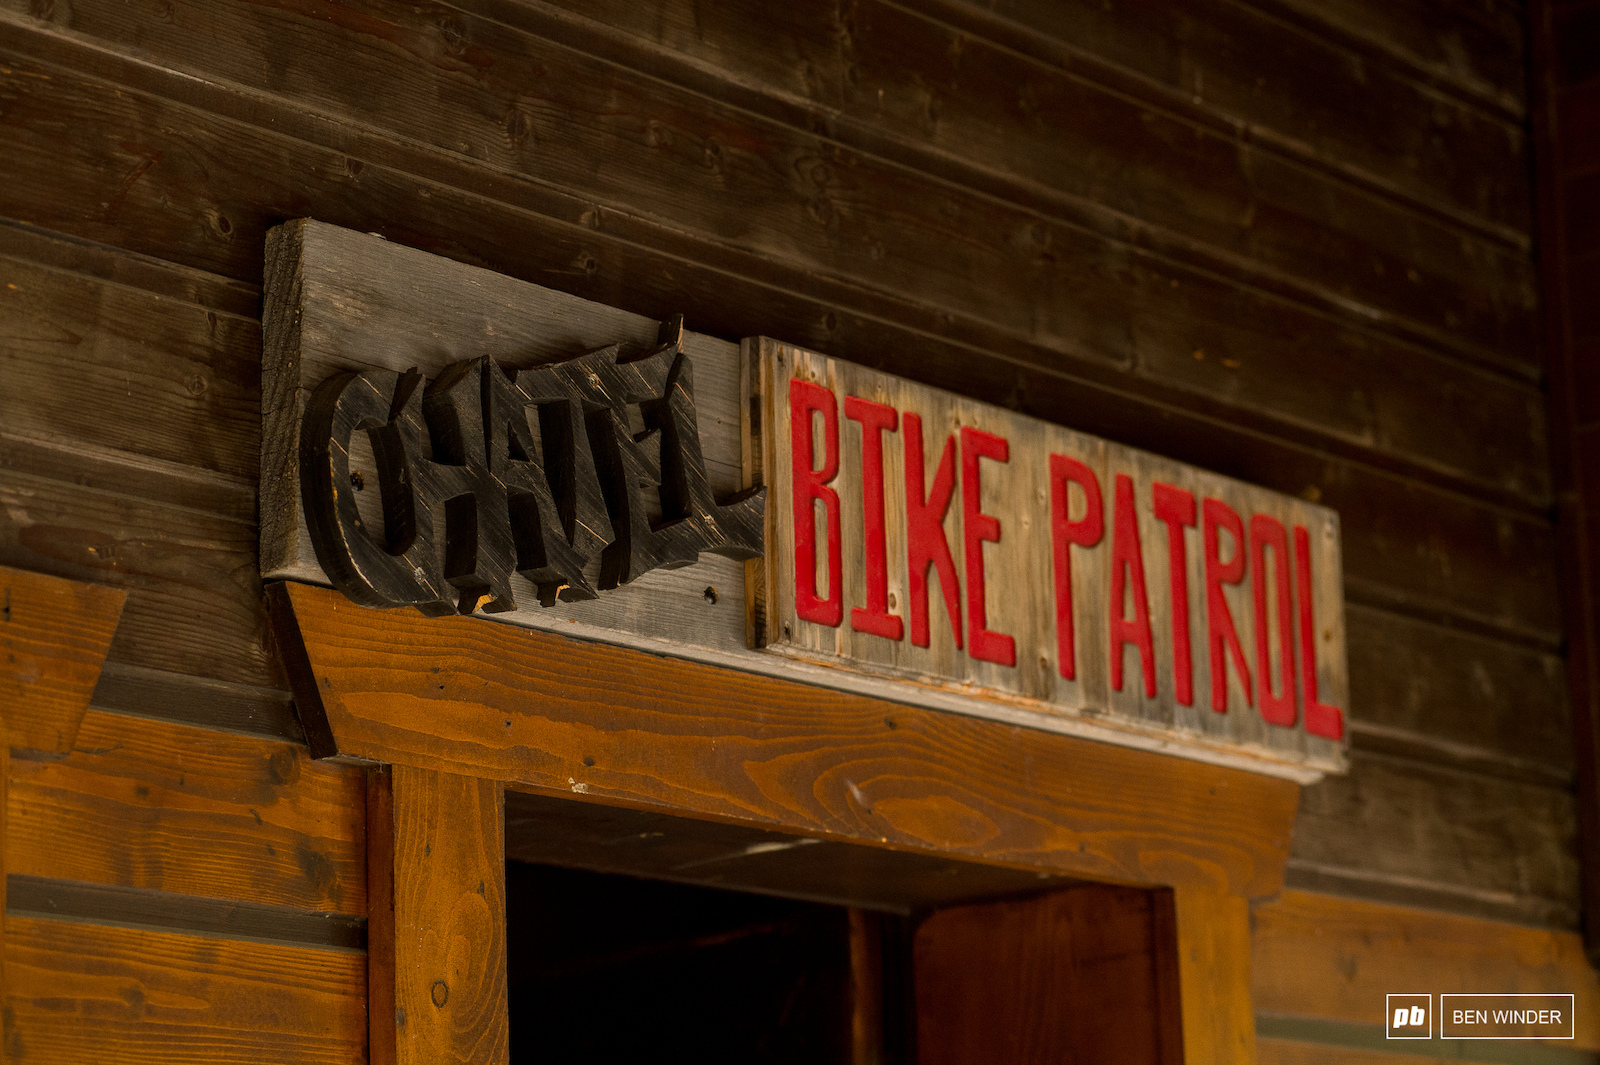 There s a full time bike patrol in Chatel who are responsible for the building and maintaining the trails but also close the trails at the end of each day to make sure no one is left stranded on the mountain.